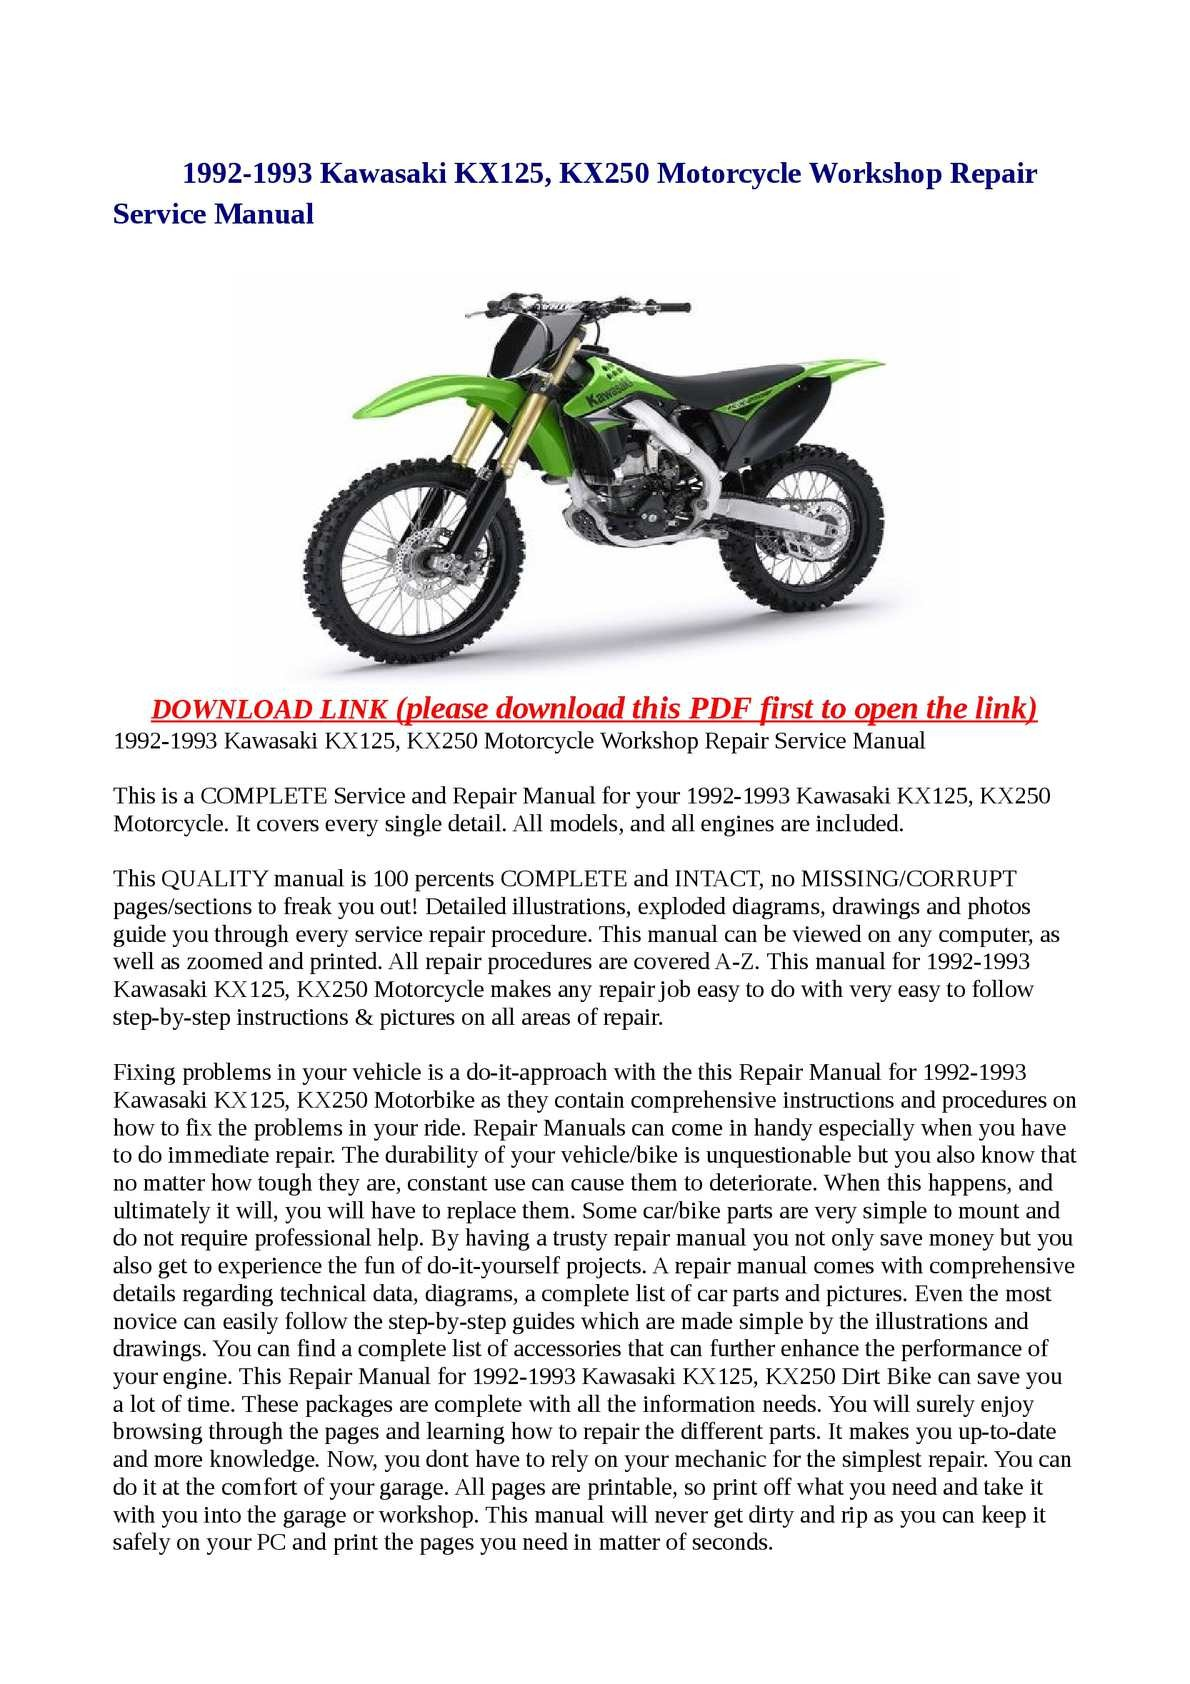 doc] ➤ diagram klx 140 wiring diagram ebook schematic circuitkx 250 engine  diagram my wiring